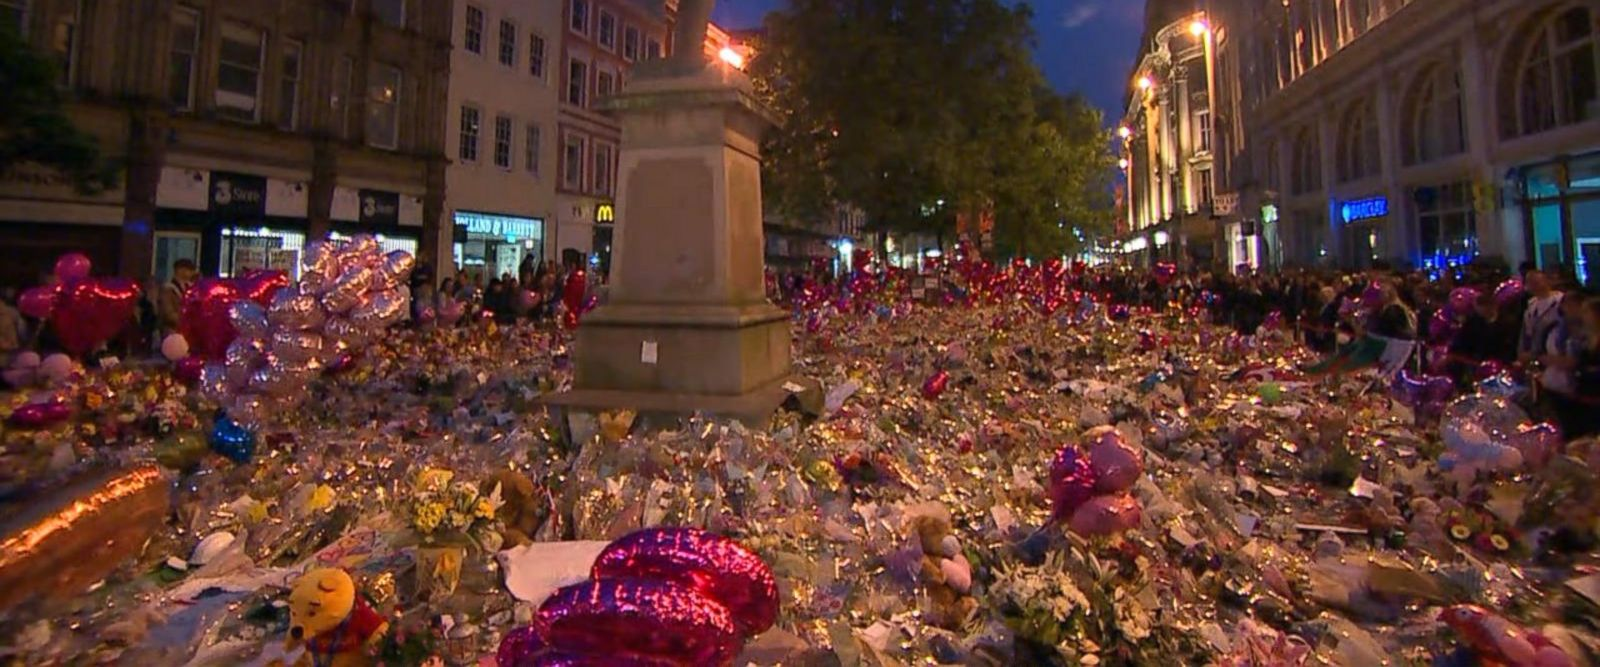 VIDEO: Emotional vigil held in Manchester square 1 week after attack